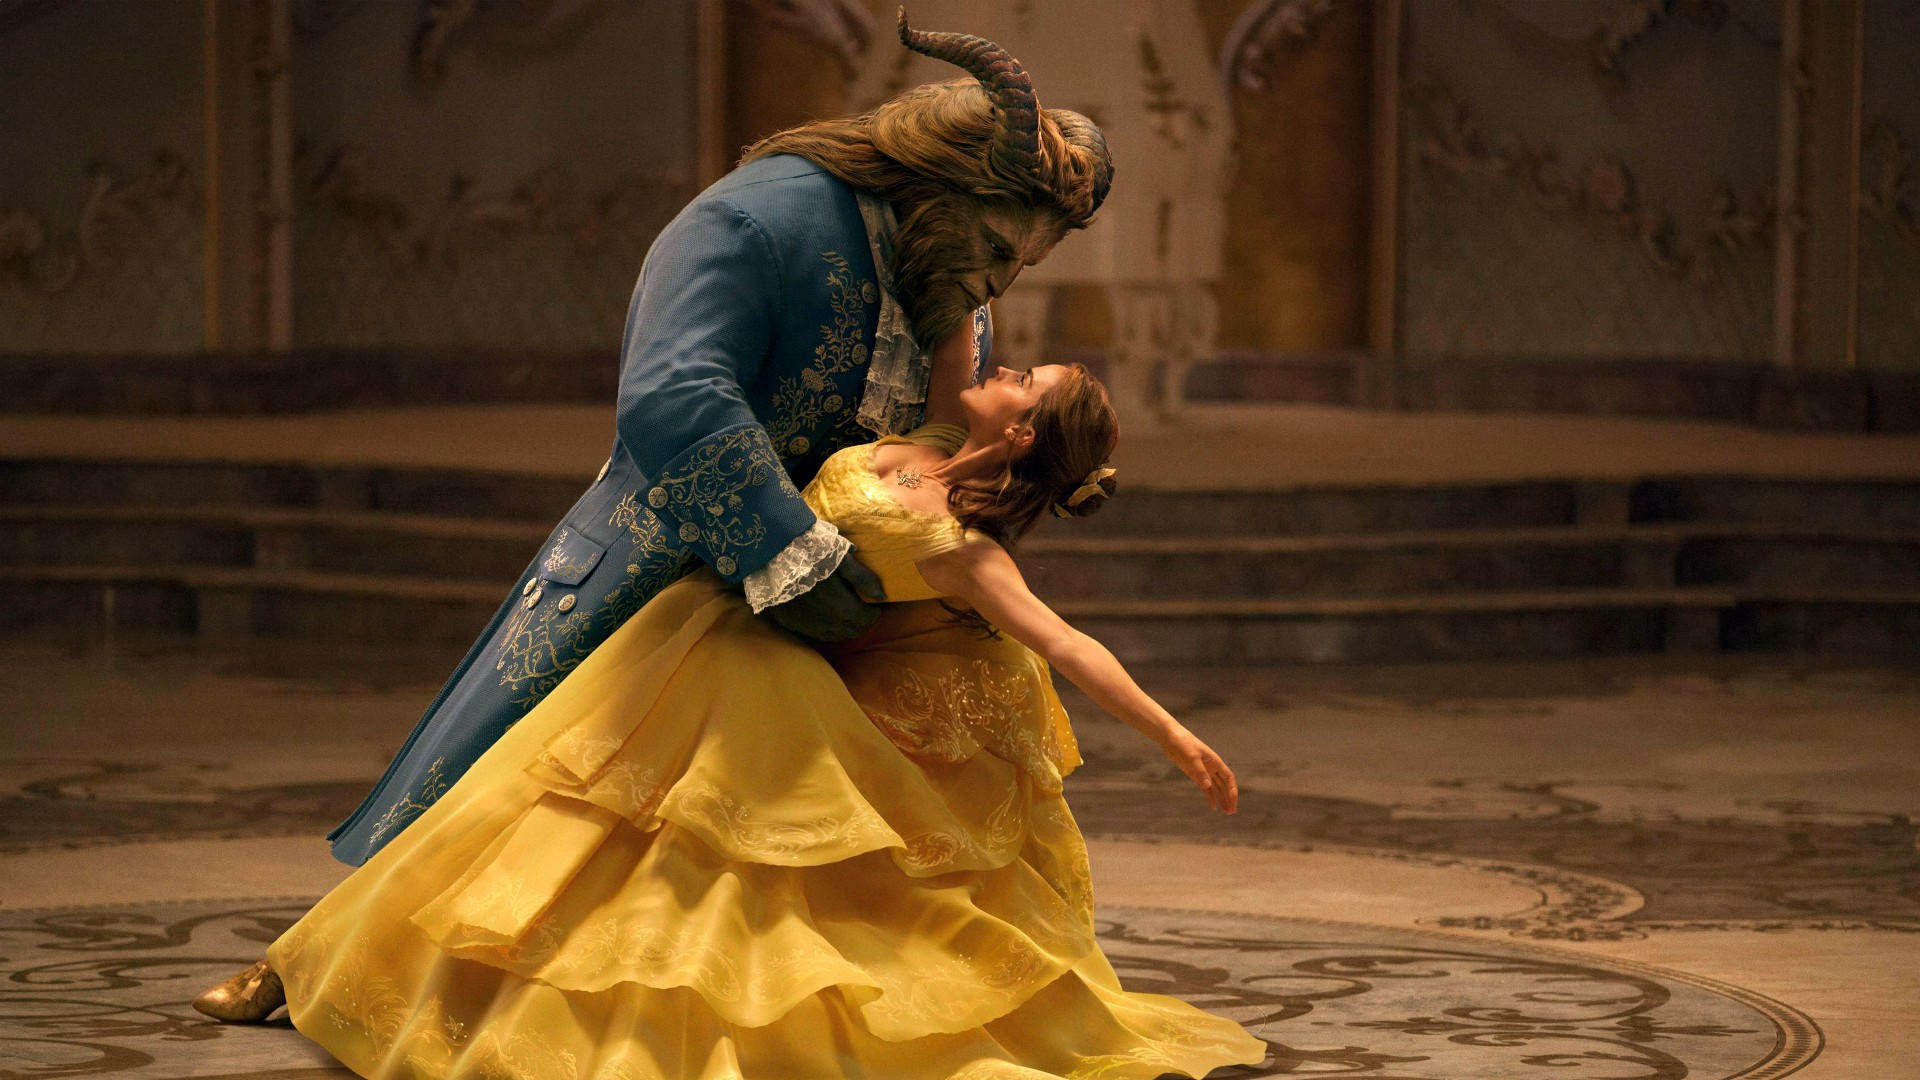 2017 Beauty And The Beast Disney Movie Wallpaper